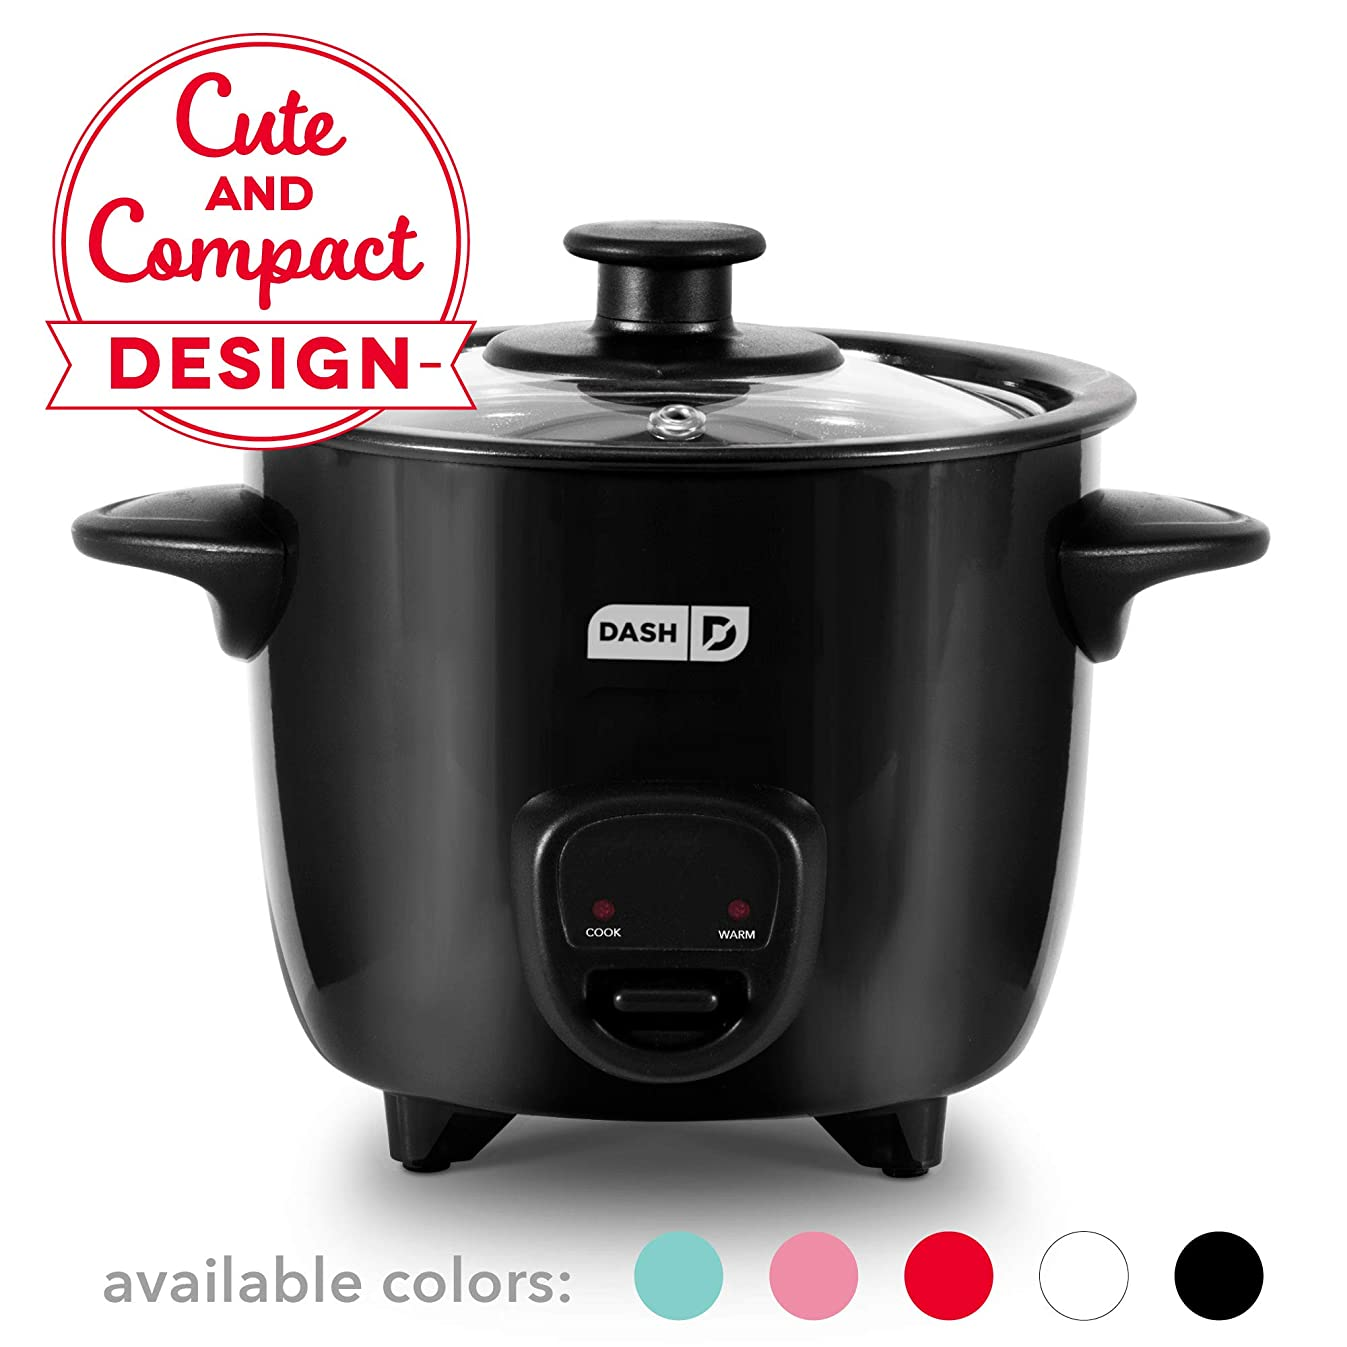 Dash DRCM200BK Mini Rice Cooker Steamer with with Removable Nonstick Pot, Keep Warm Function & Recipe Guide, Black